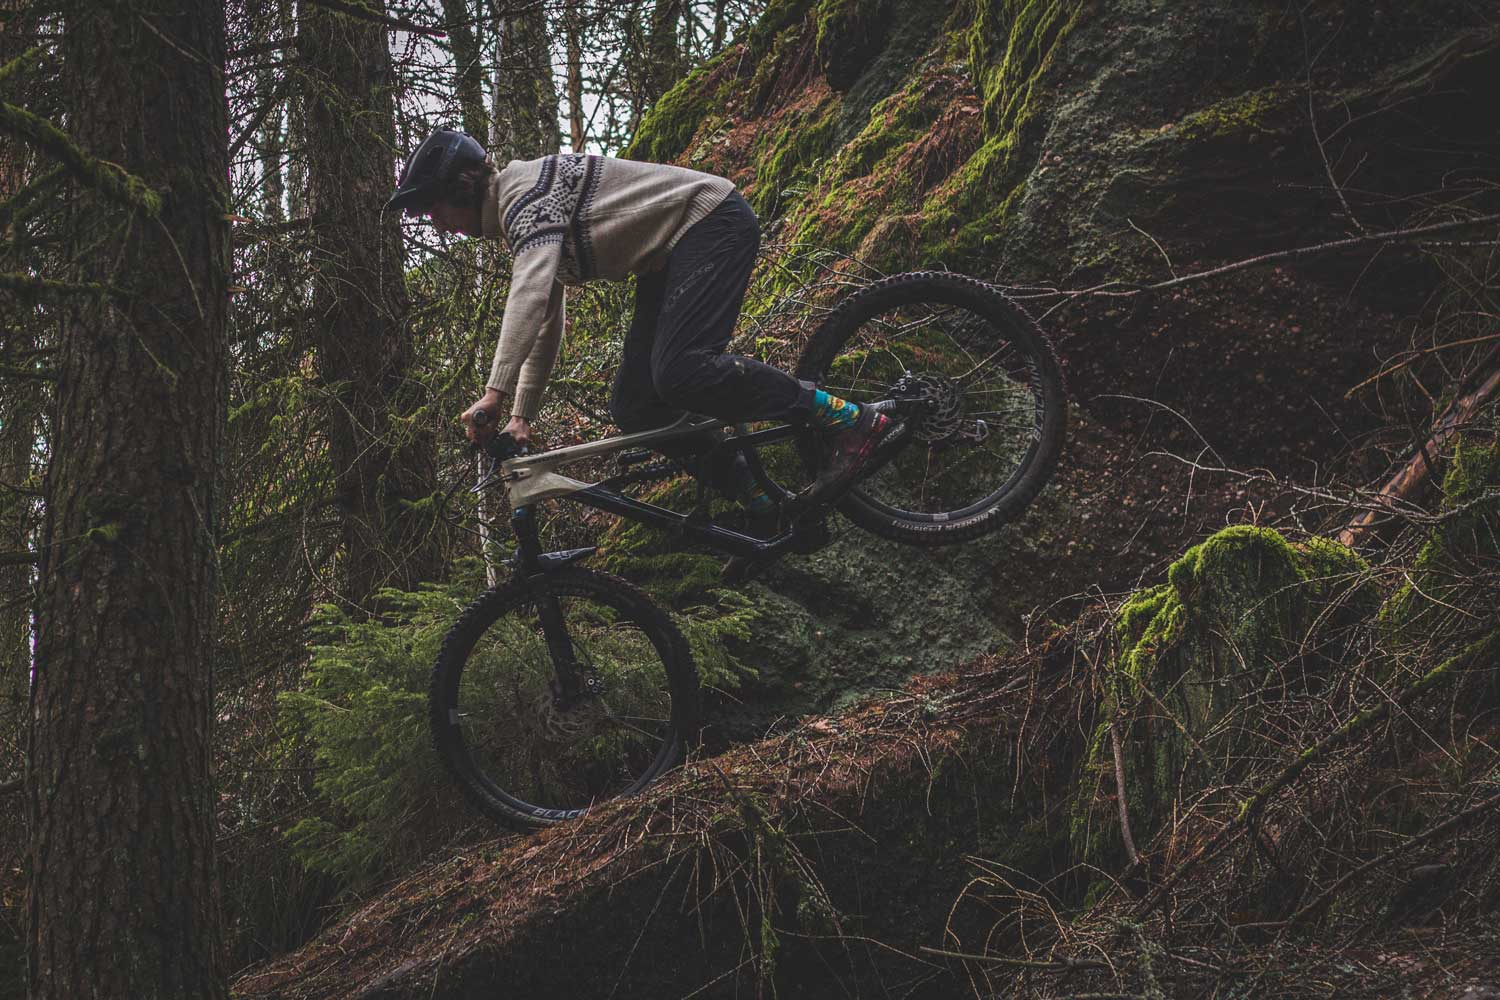 Flowgroh Shreds Les Vosges with Grandpa on E Bike